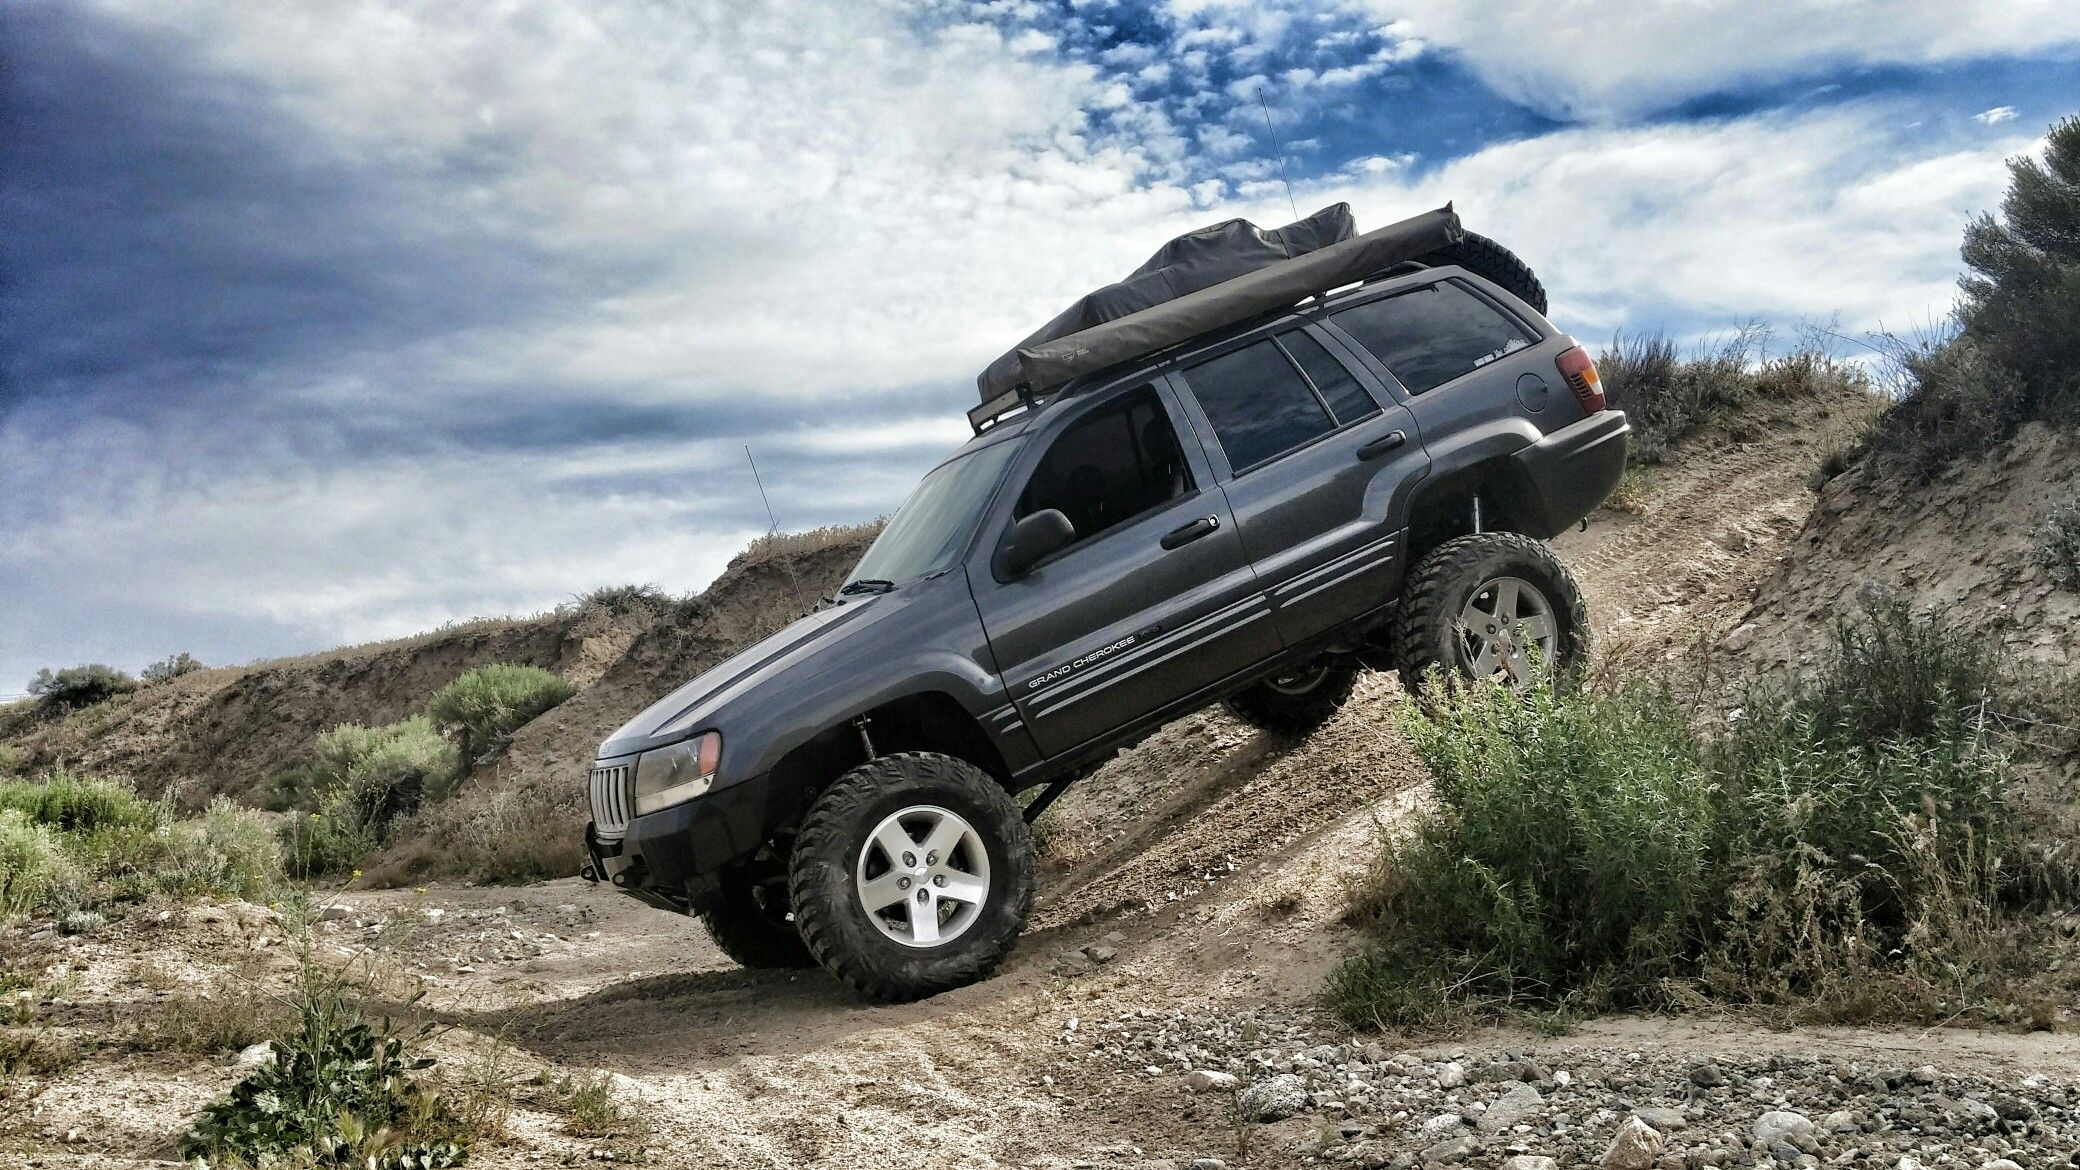 That S The Life Jeep Wj Jeep Scout Jeep Zj